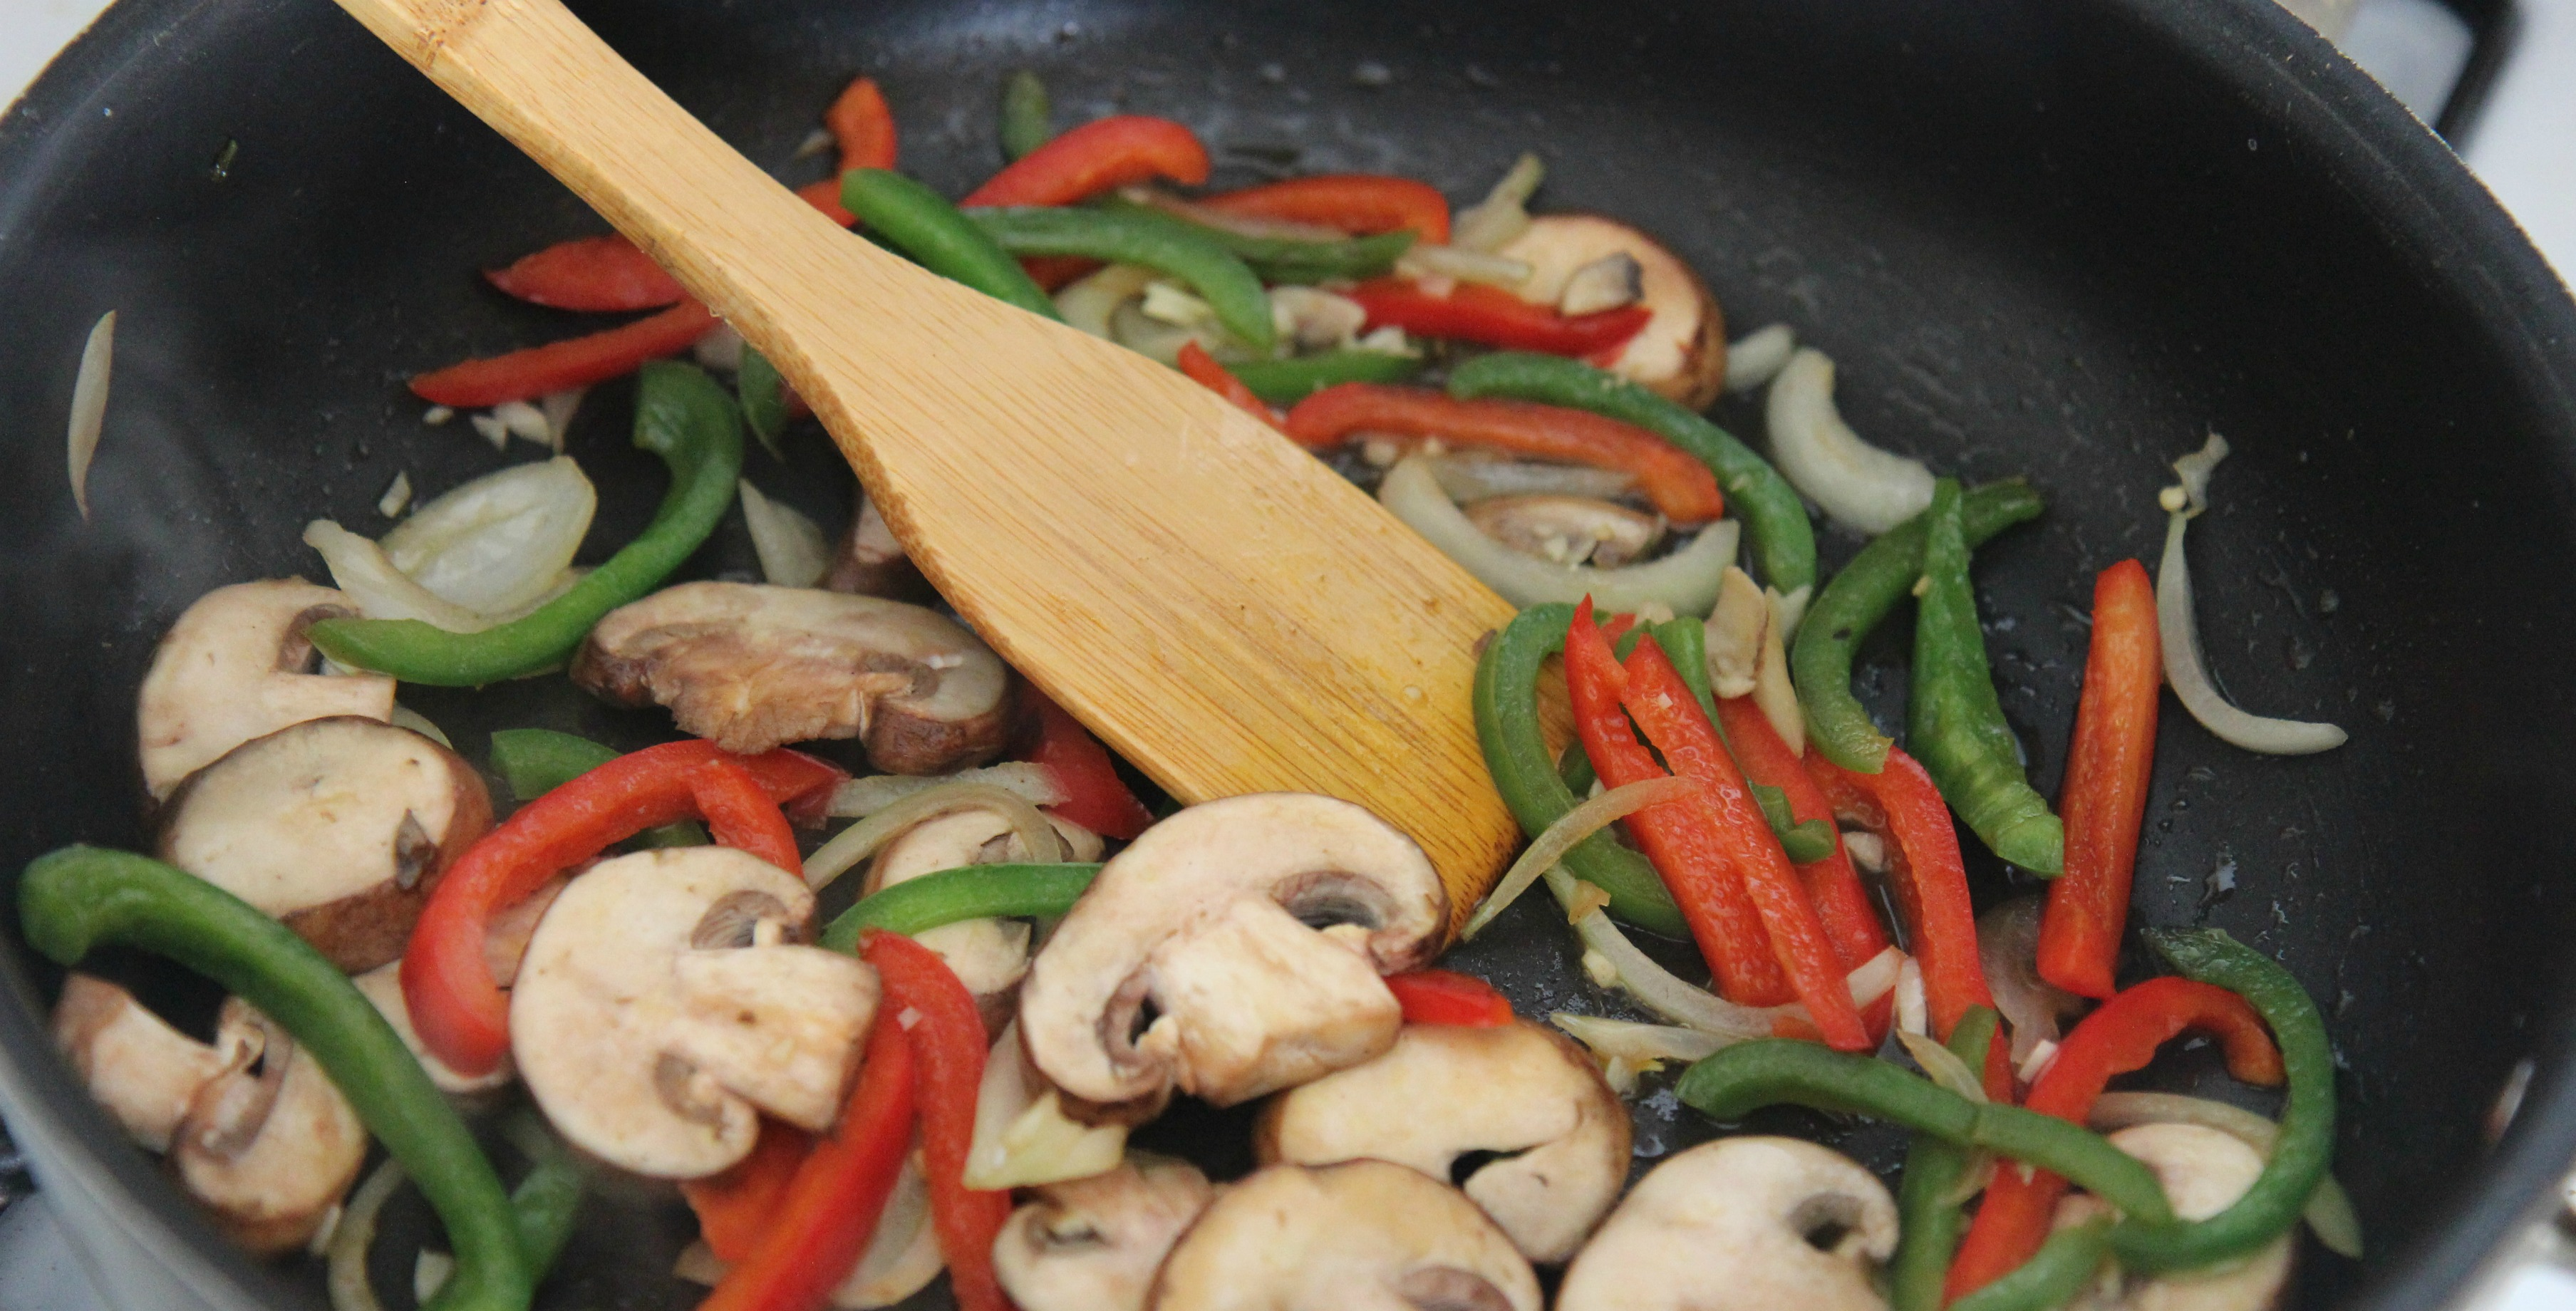 Saute the vegetables together in a skillet with some oil. Vegetables include mushrooms, onions, and red and green peppers.